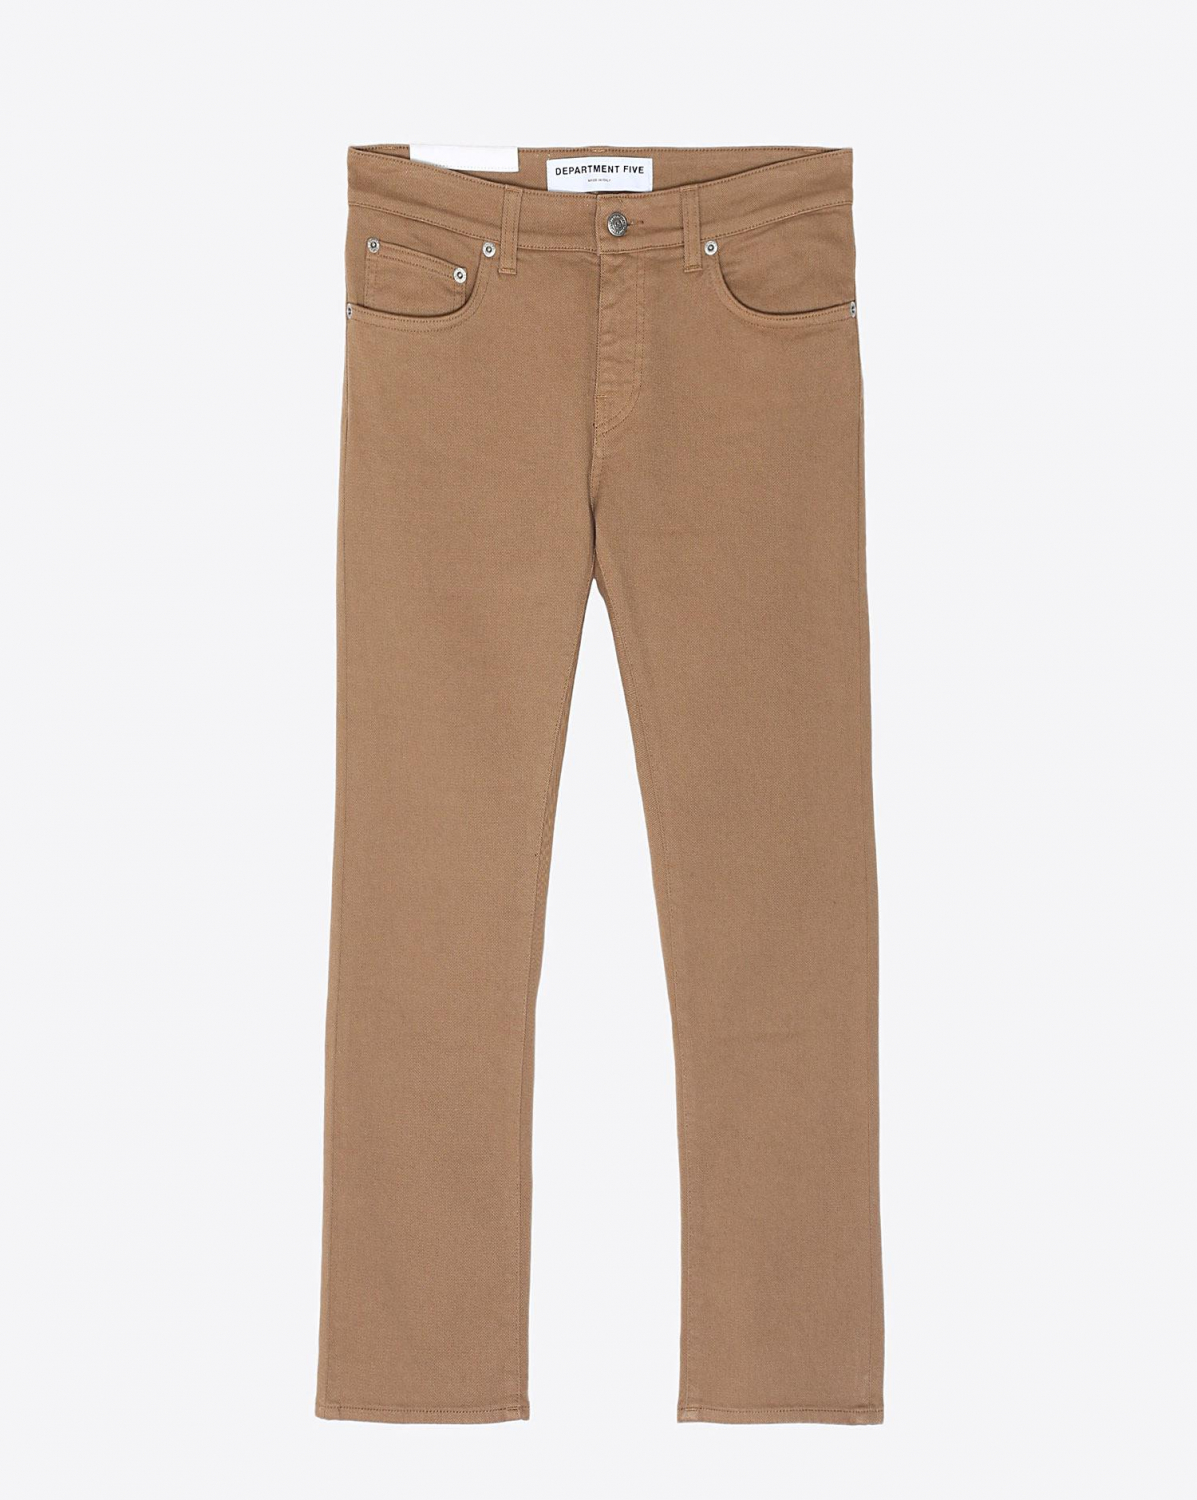 Department Five Jeans Tama - Sable